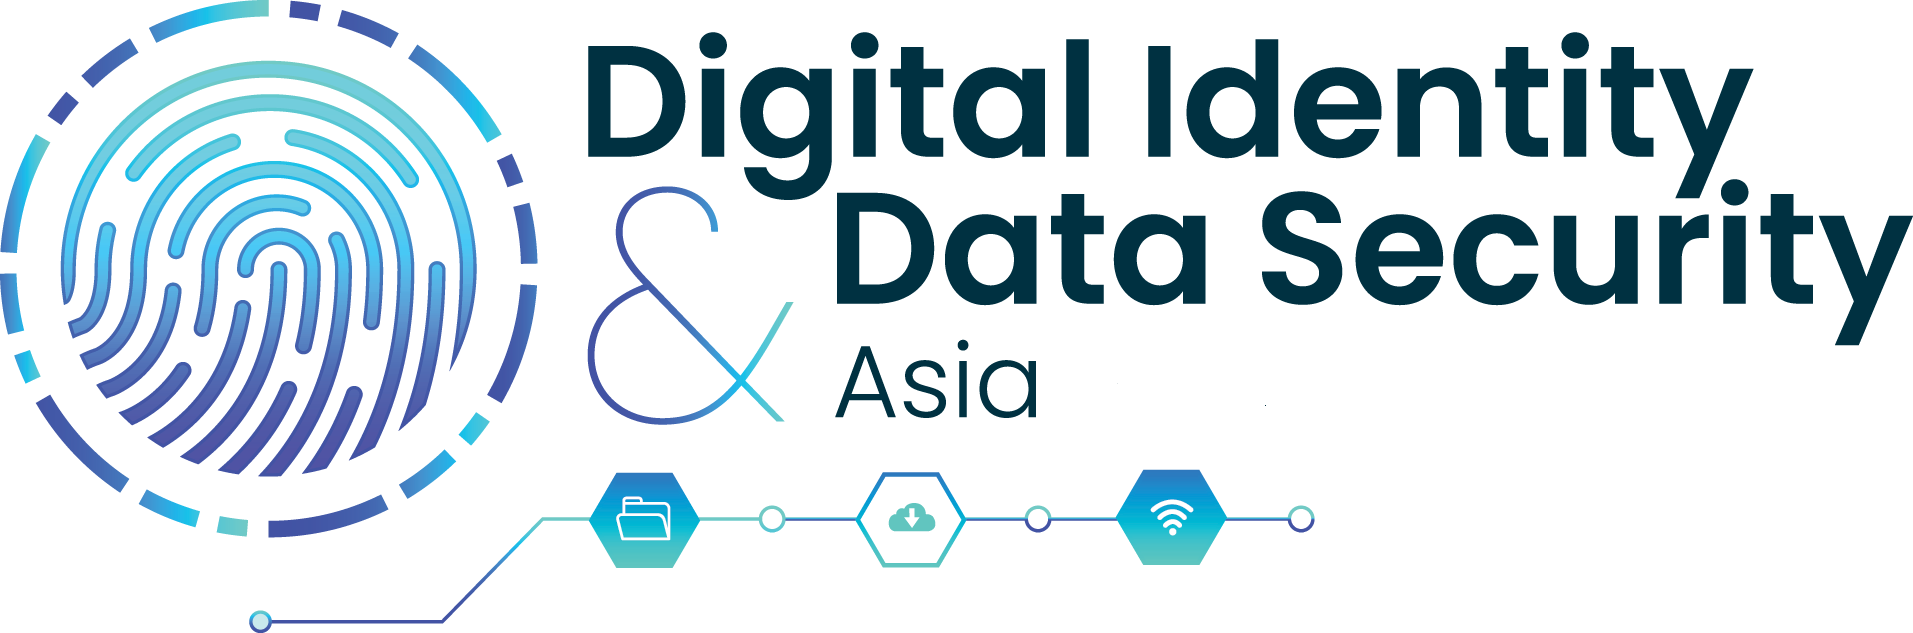 Digital Identity & Data Security Asia 2020